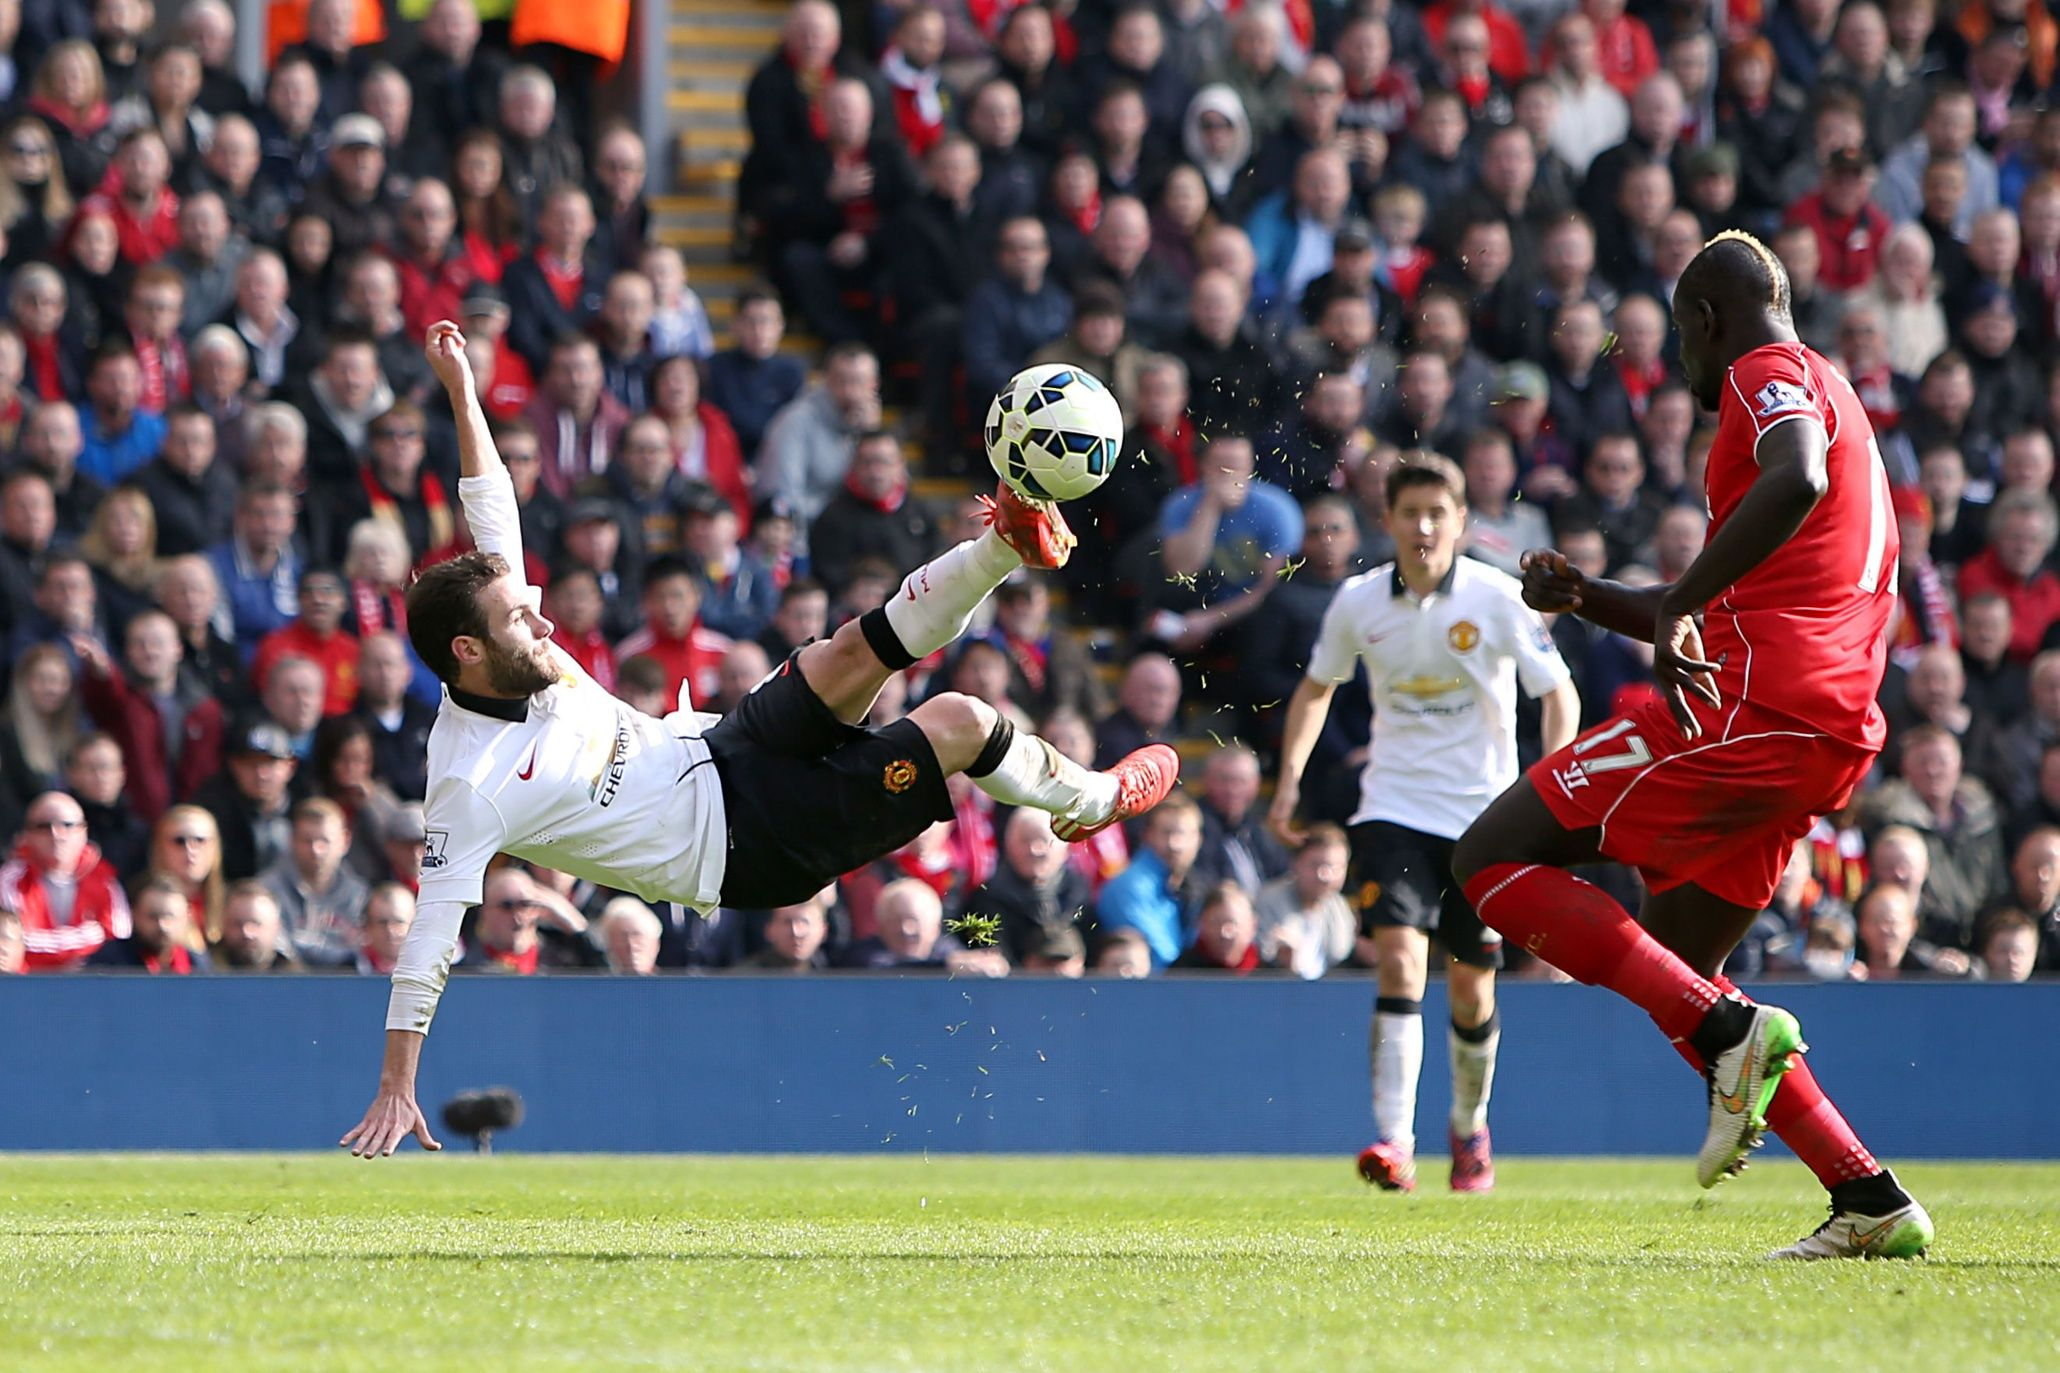 Liverpool v Manchester United in pictures Manchester